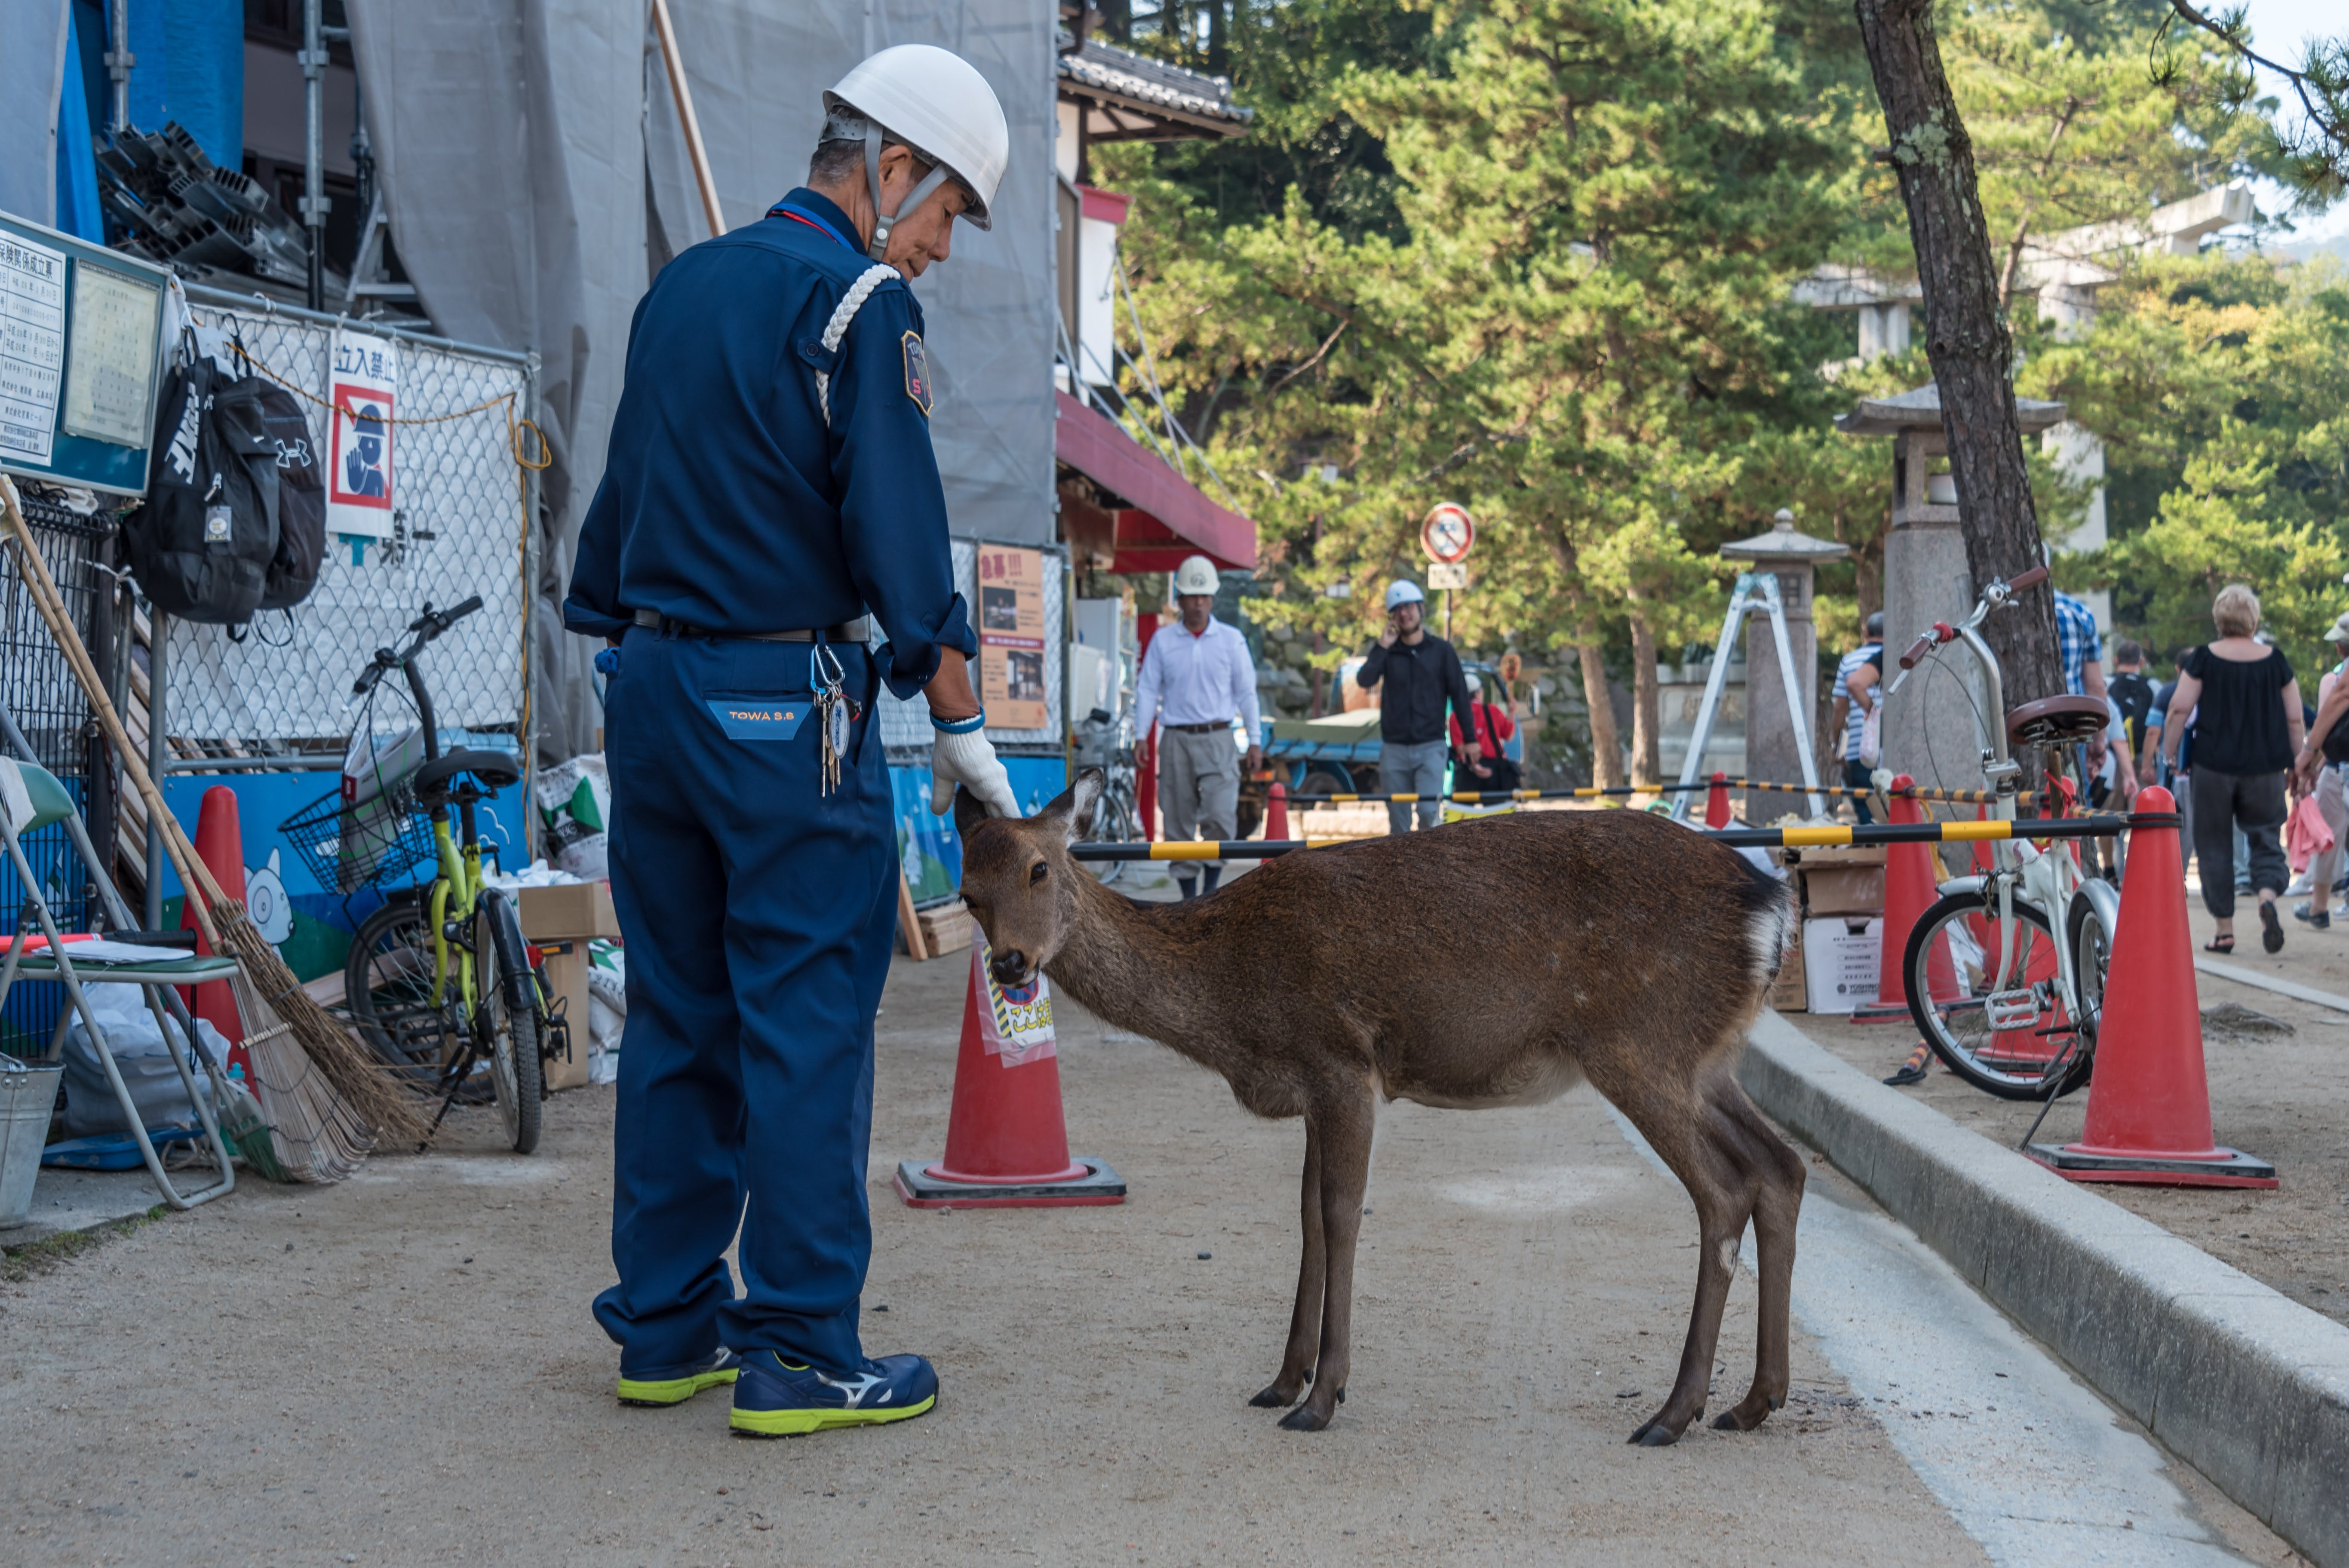 Free stock photo of #deer and worker